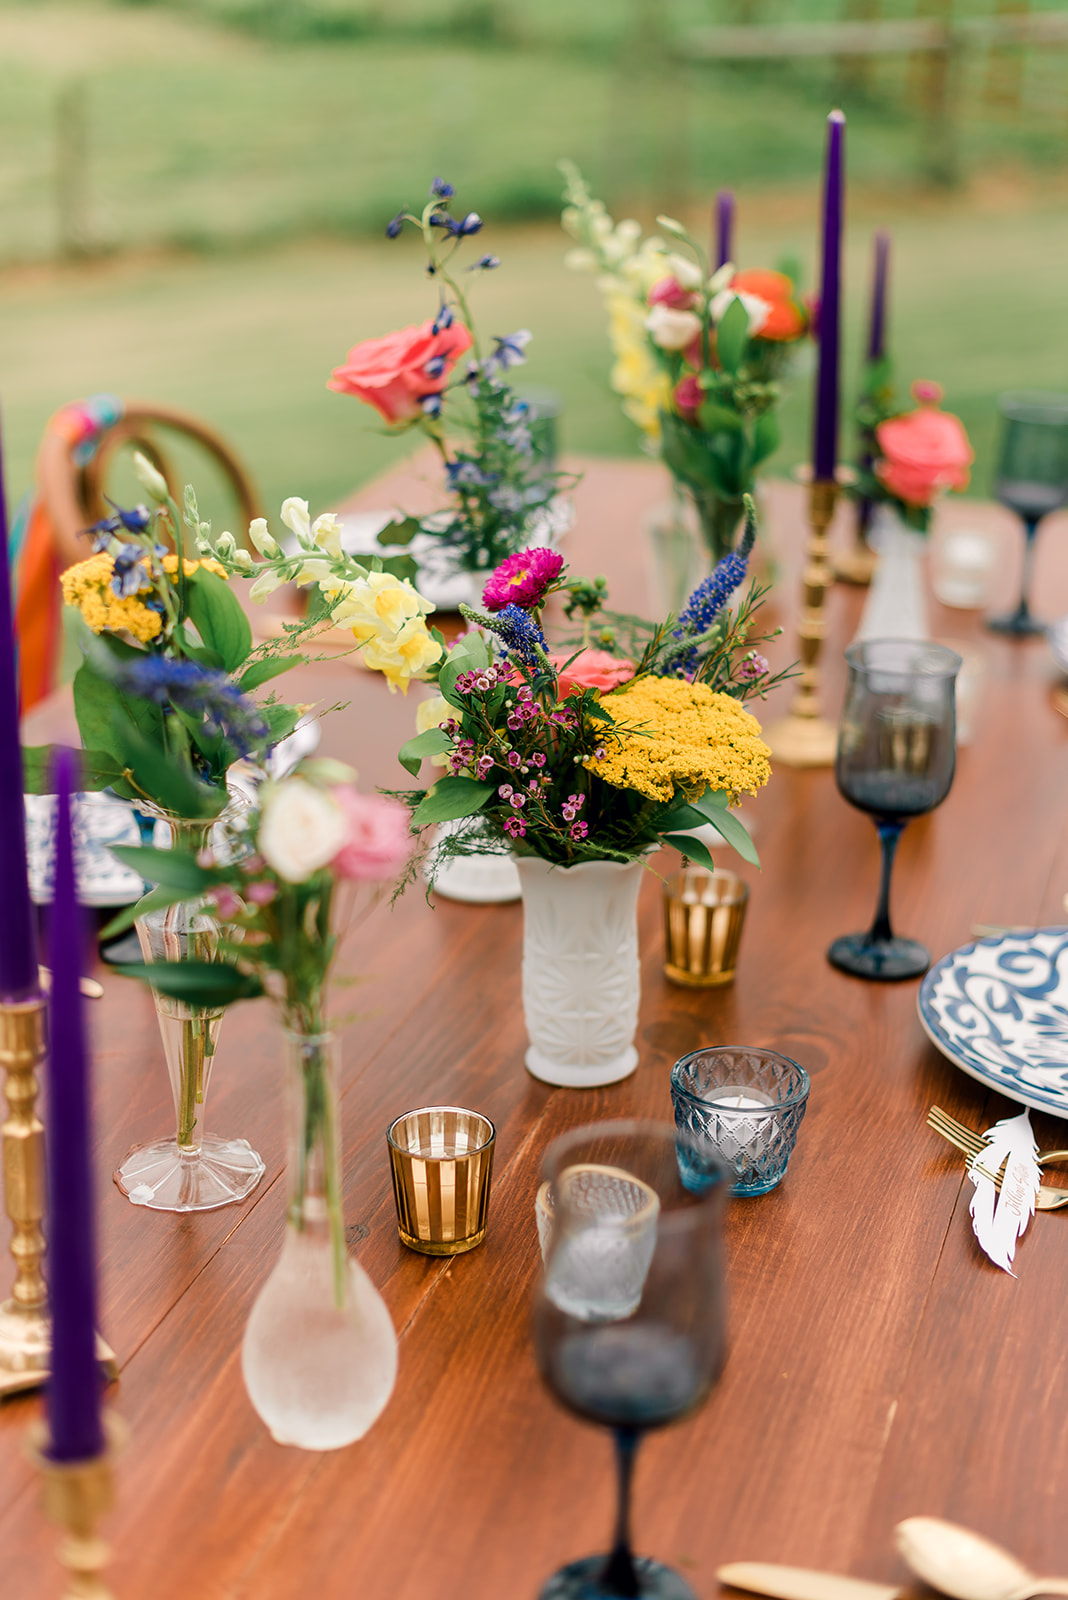 Fun & Colorful Barn Wedding Tablescape at Heaven Sent Farms in Avella Dawn Derbyshire Photography (28).jpg